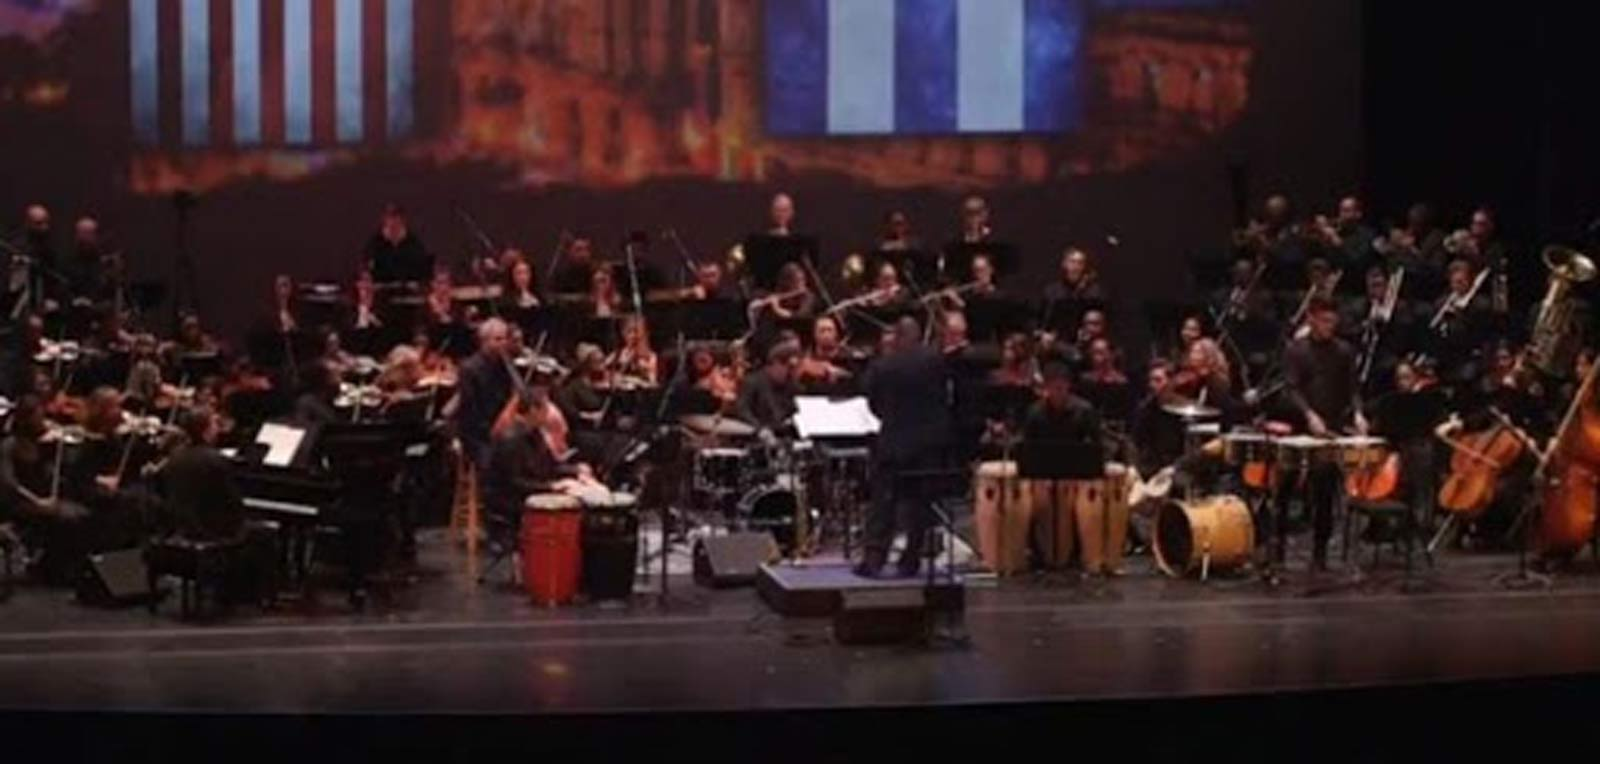 Talent gathered in a Concert for Cuba